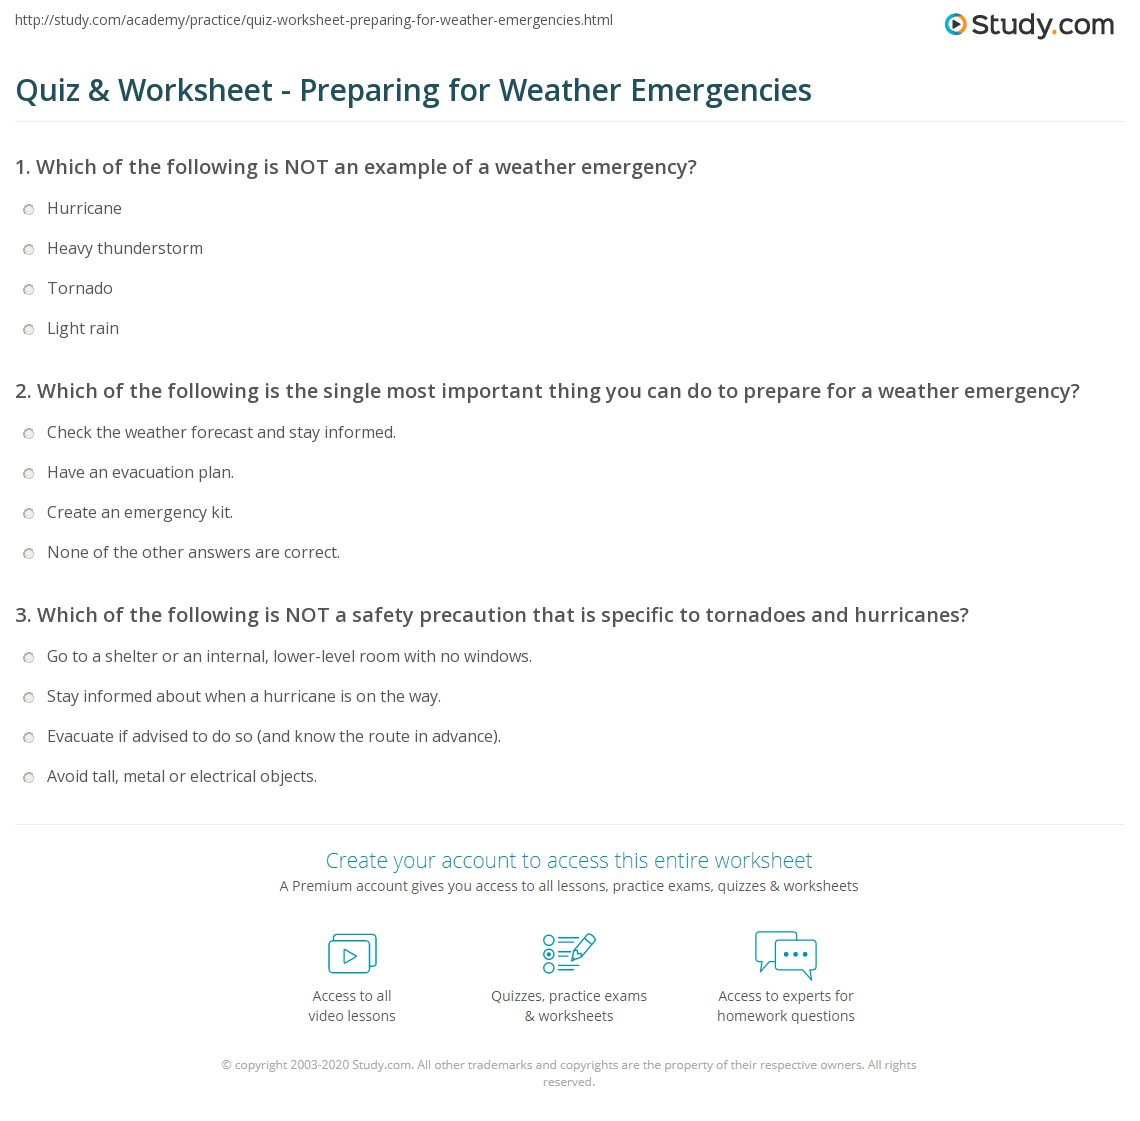 thunderstorm and tornadoes specific purpose Tornadoes can accompany tropical storms and hurricanes as they move onto  land  choice should be driven by your specific circumstances fiction: it is  safe.